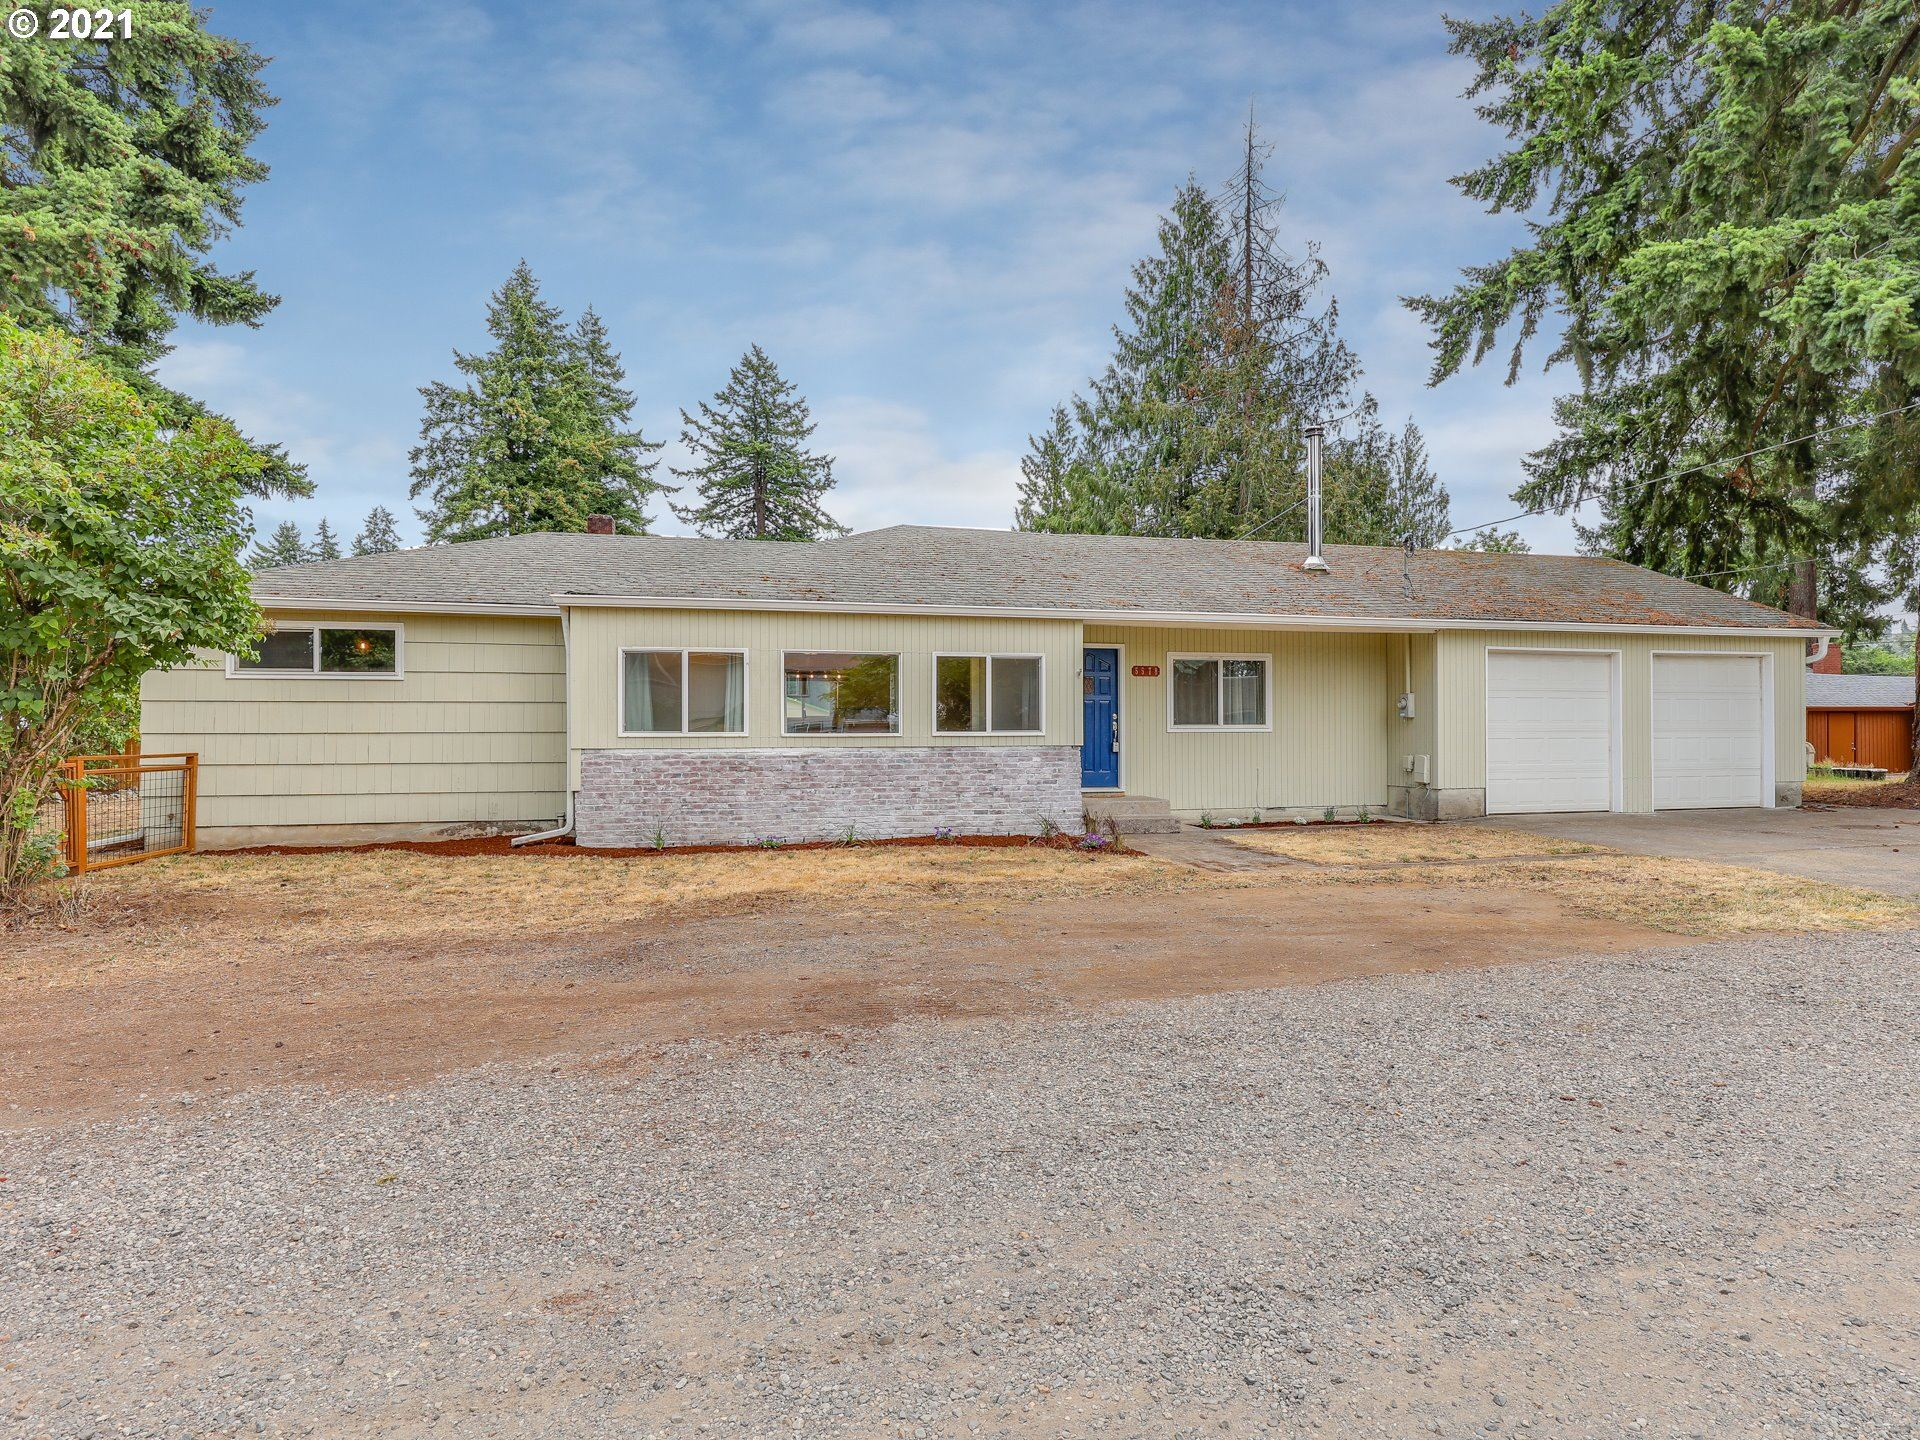 5578 SE 124TH AVE, Portland, OR 97236 - MLS#: 21302162